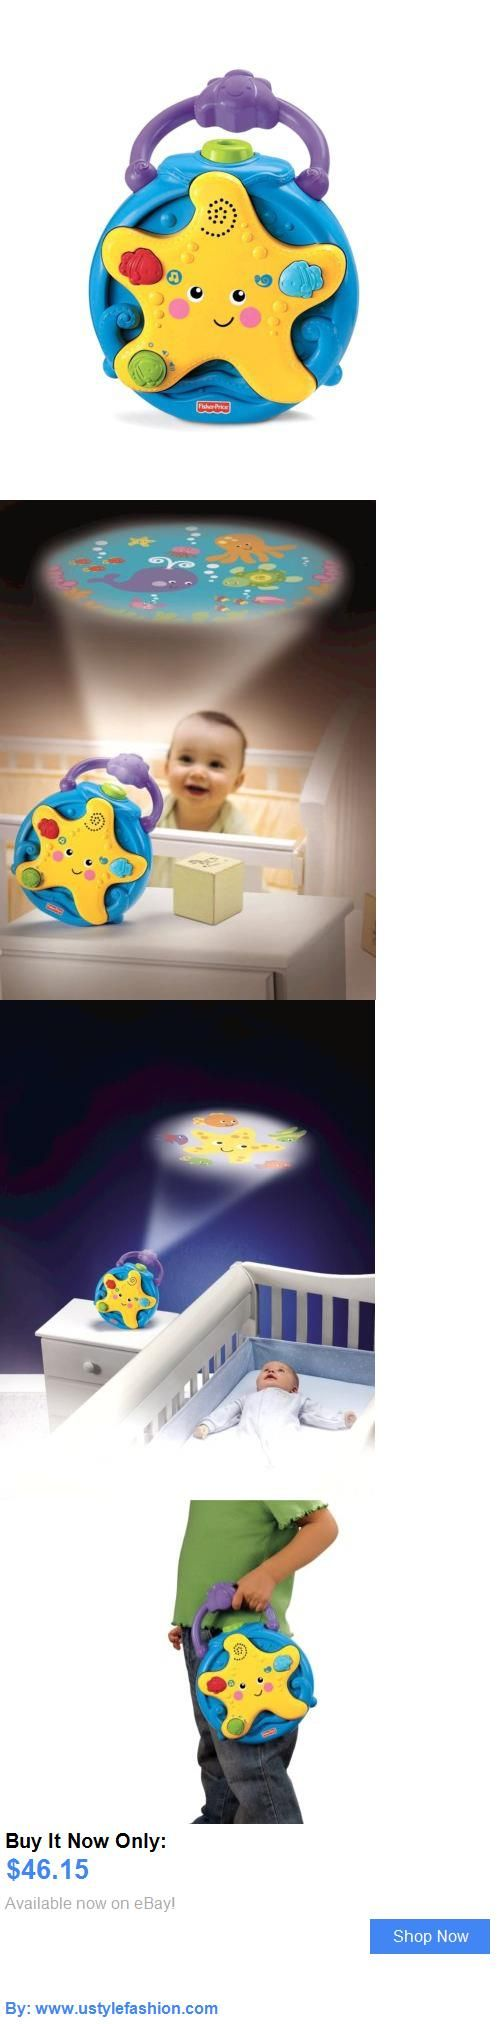 Crib Toys: Fisher-Price Ocean Wonders Projector Soother , New, Free Shipping BUY IT NOW ONLY: $46.15 #ustylefashionCribToys OR #ustylefashion